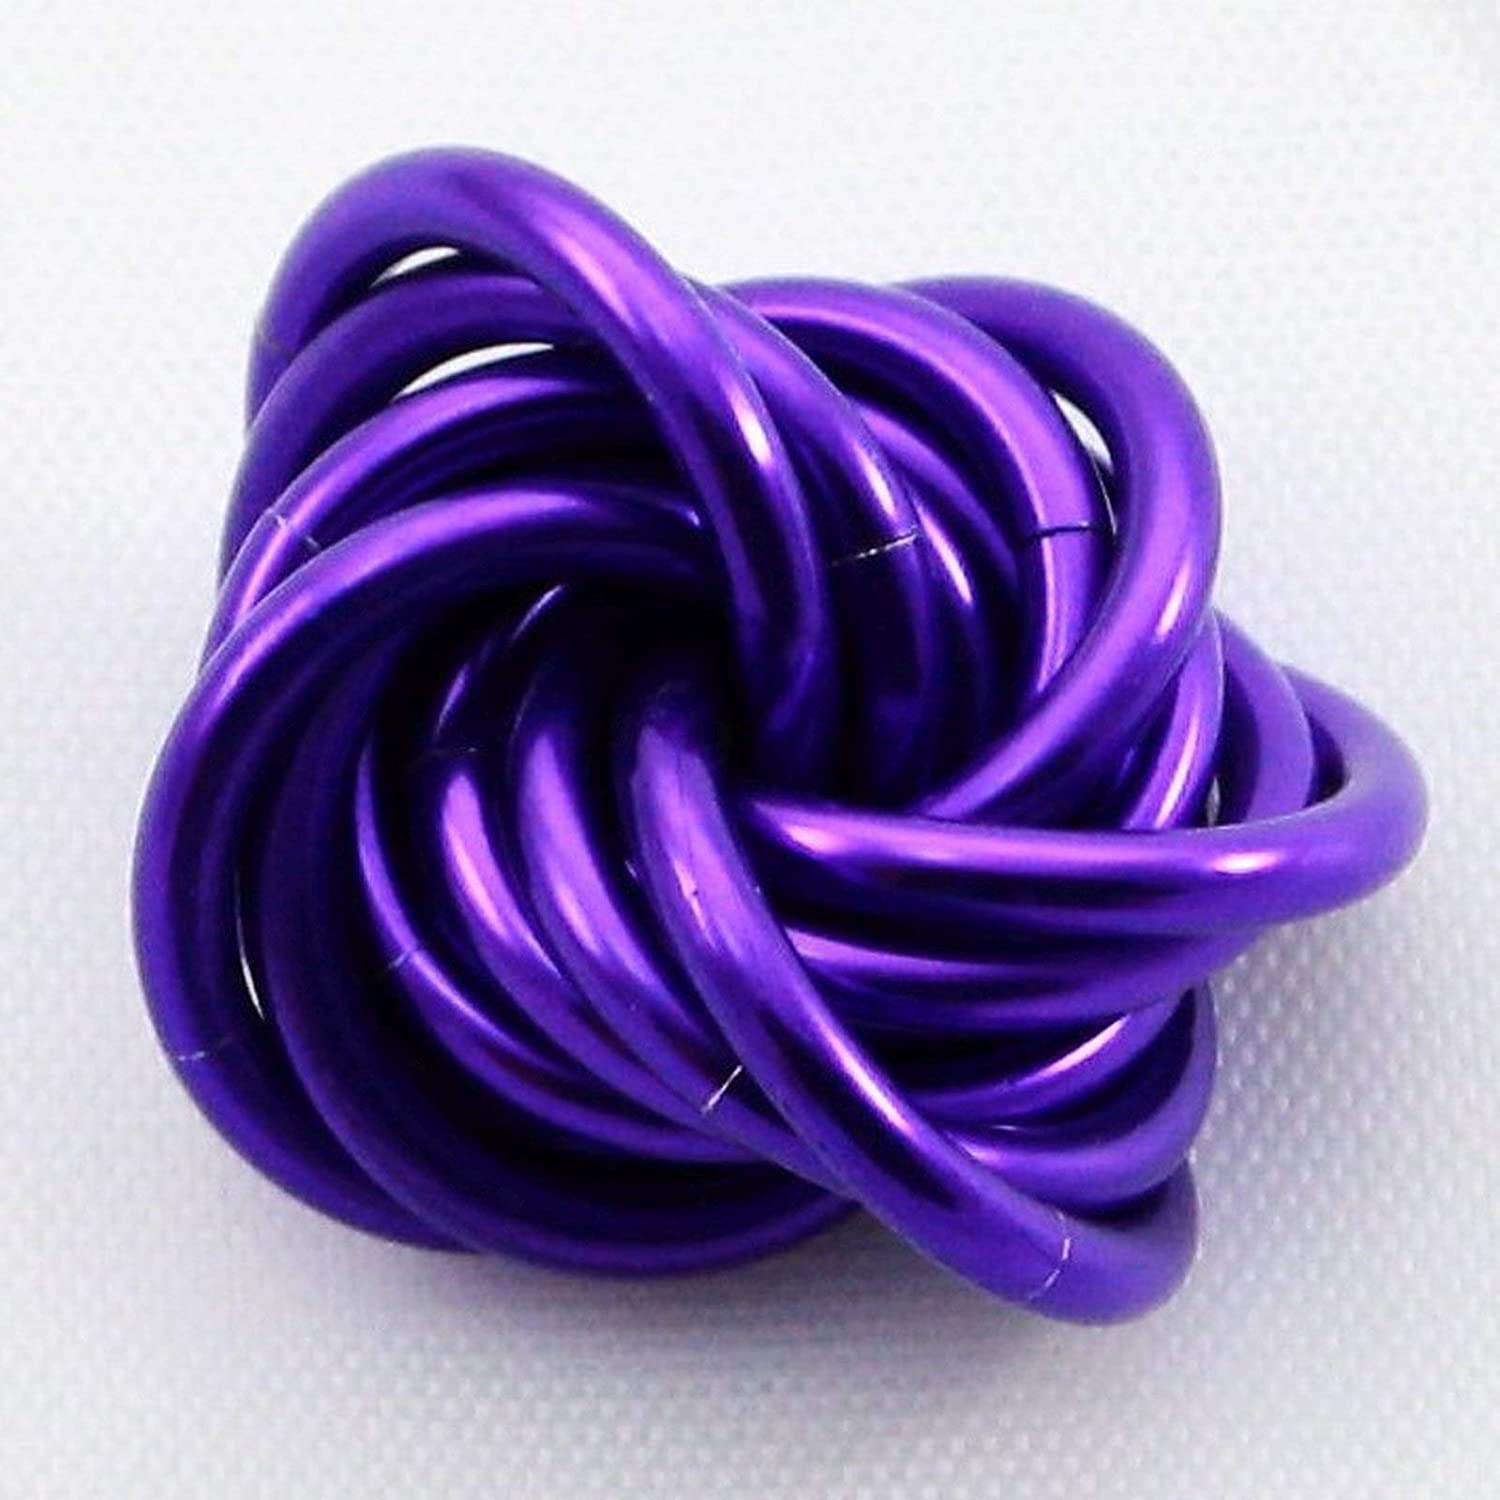 Shiny Deep Purple Stress Ball for Restless Hands Small Mobius Hand Fidget Toy Office Toy M/öbii Ultra Violet